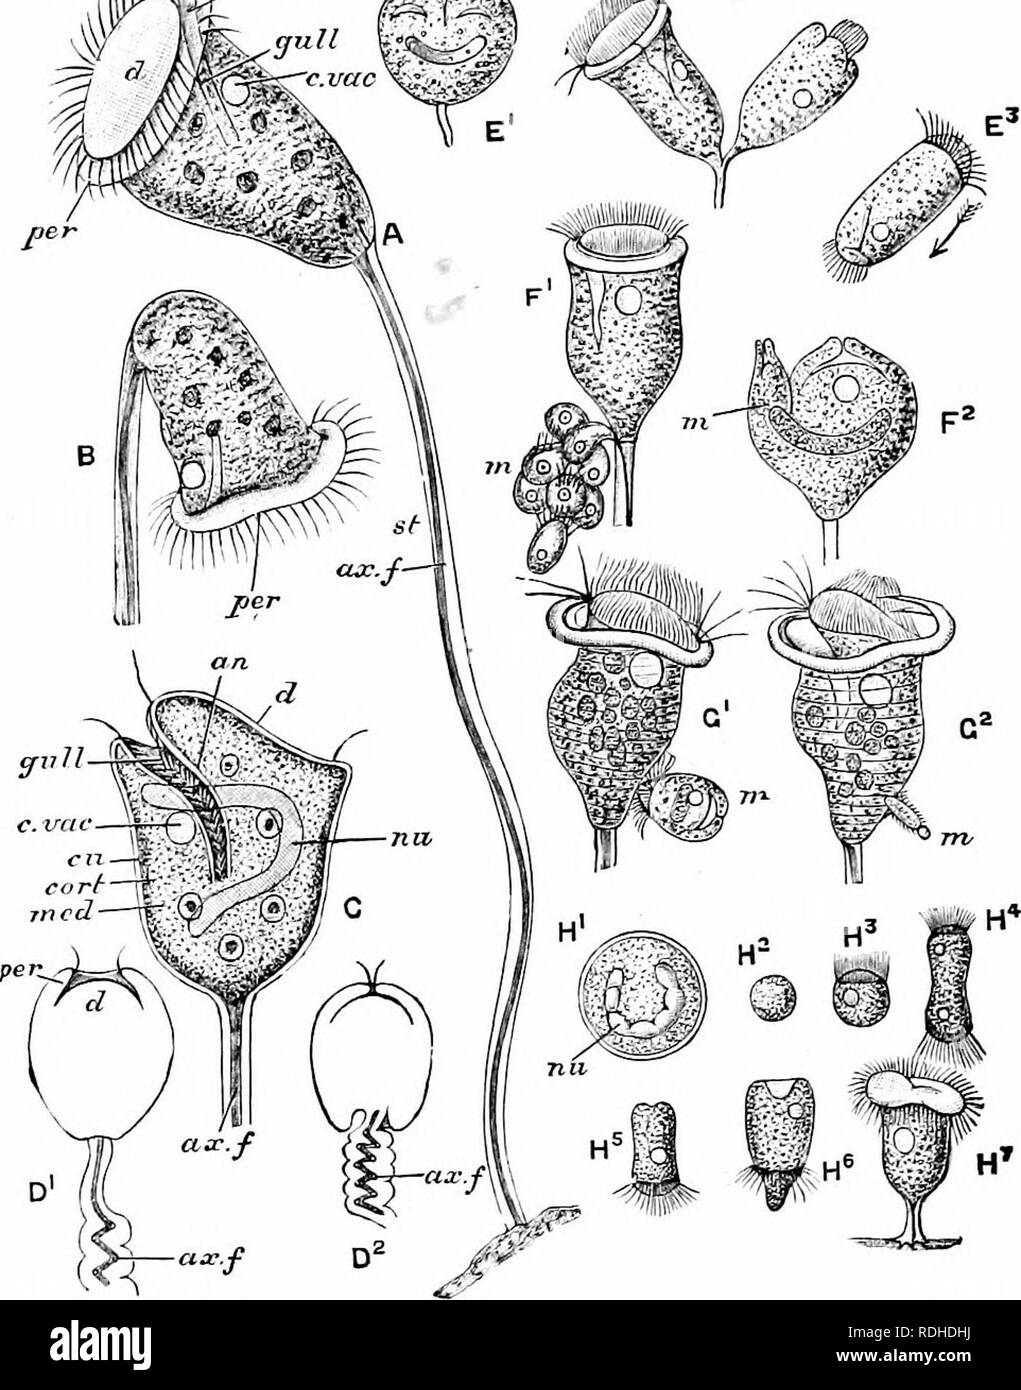 . A manual of zoology. 54 MANUAL OF ZOOLOGY SECT. Dendrosoma (Fig. 20, g), one of the Tentaculifera : it has a creeping stem from which branches spring upwards, each terminating in a zooid with suctorial tentacles j and 'dkk>. Fig. 22.—Vorticella. A, B, living specimens in different positions; C, optical section; D1, D-, diagrams illustrating coiling of stalk; E1, E-, two stages in binary fission; E:!, free zooid; F1. F2, division into mega- and microzooids; G1, GJ, conjugation; H1, multiple fission of encysted form; H2, H;i, develop- ment of spores; ax.f, axial fibre; cart, cortex; cm, cut - Stock Image